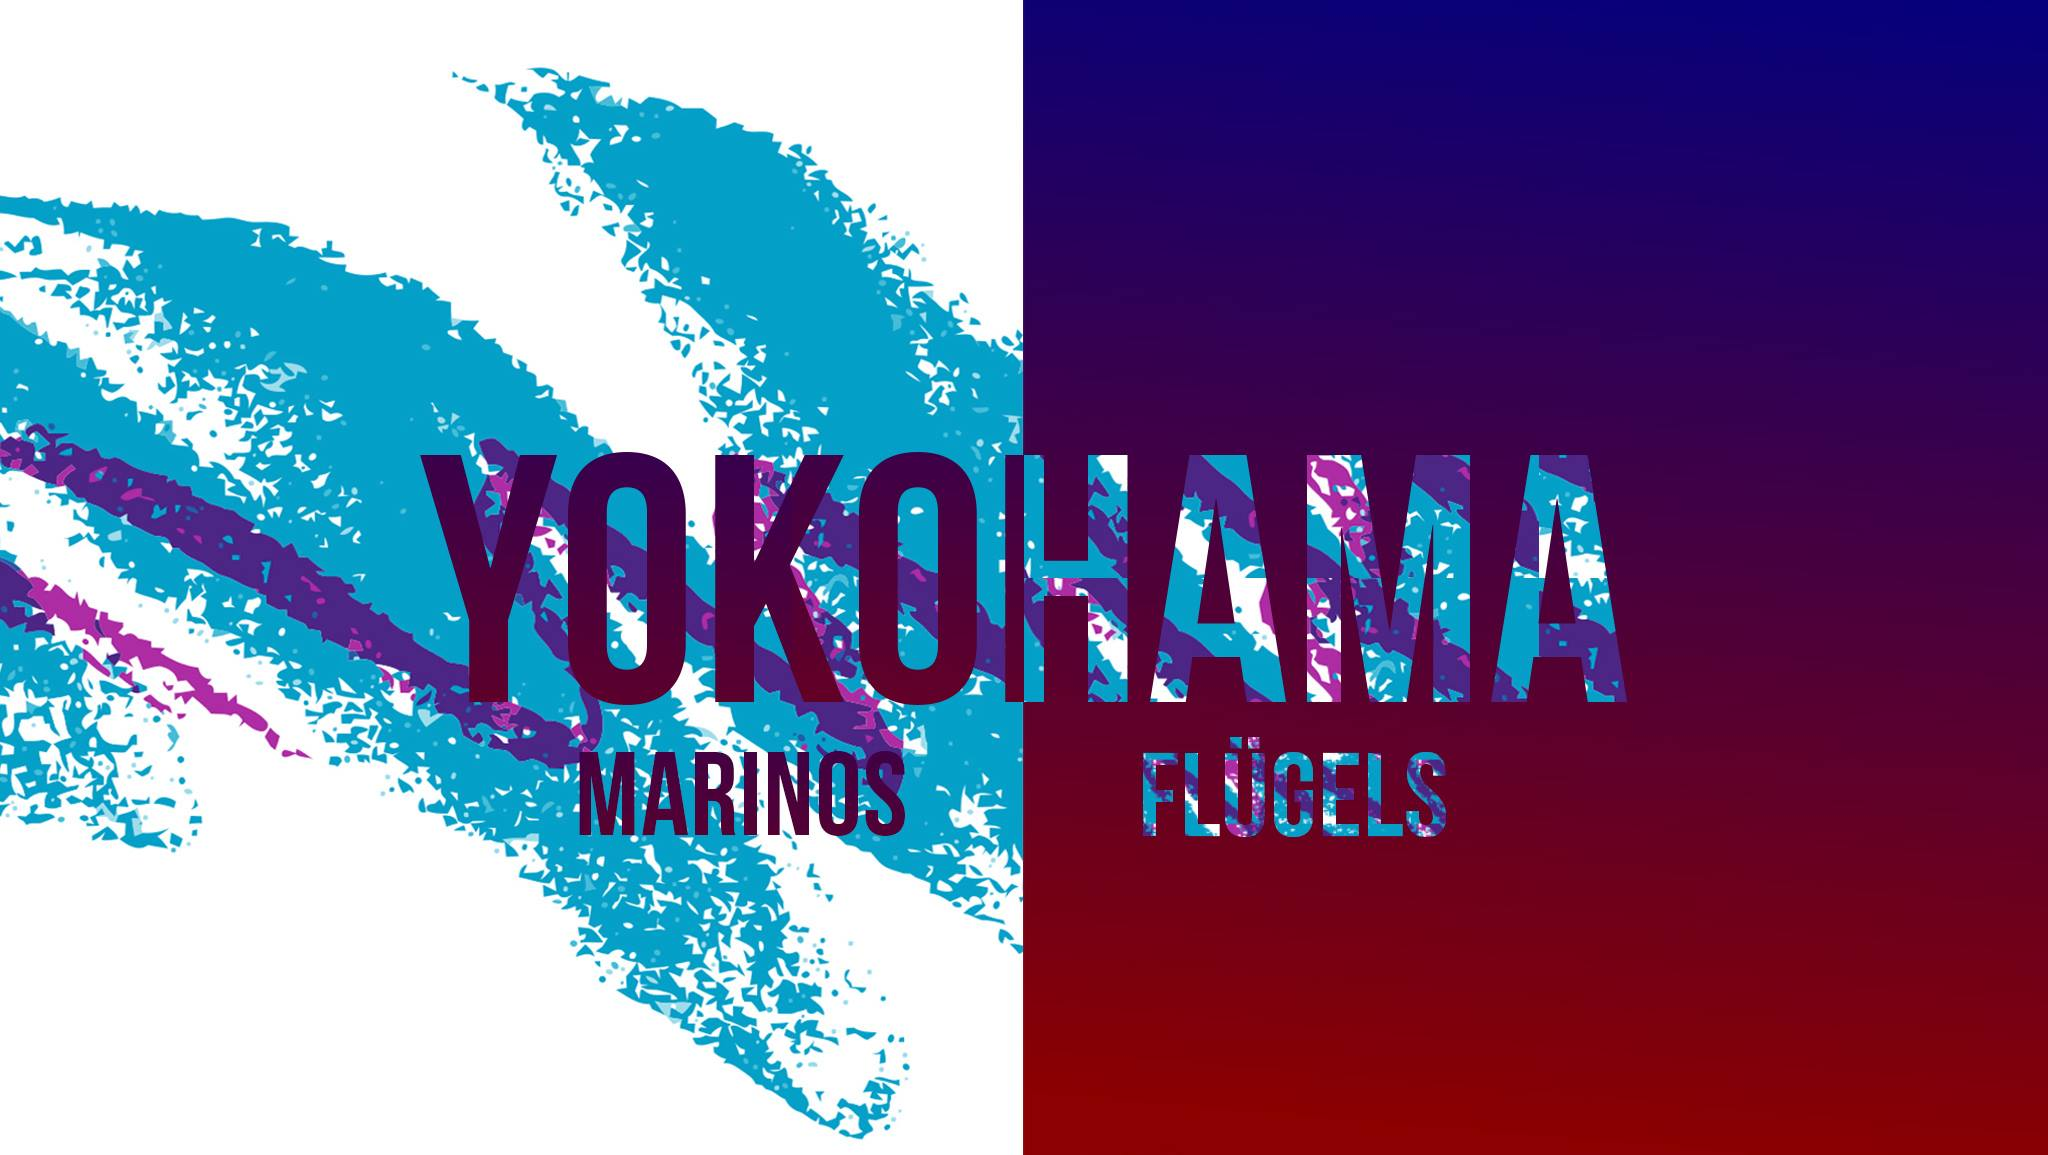 Yokohama Derby Text